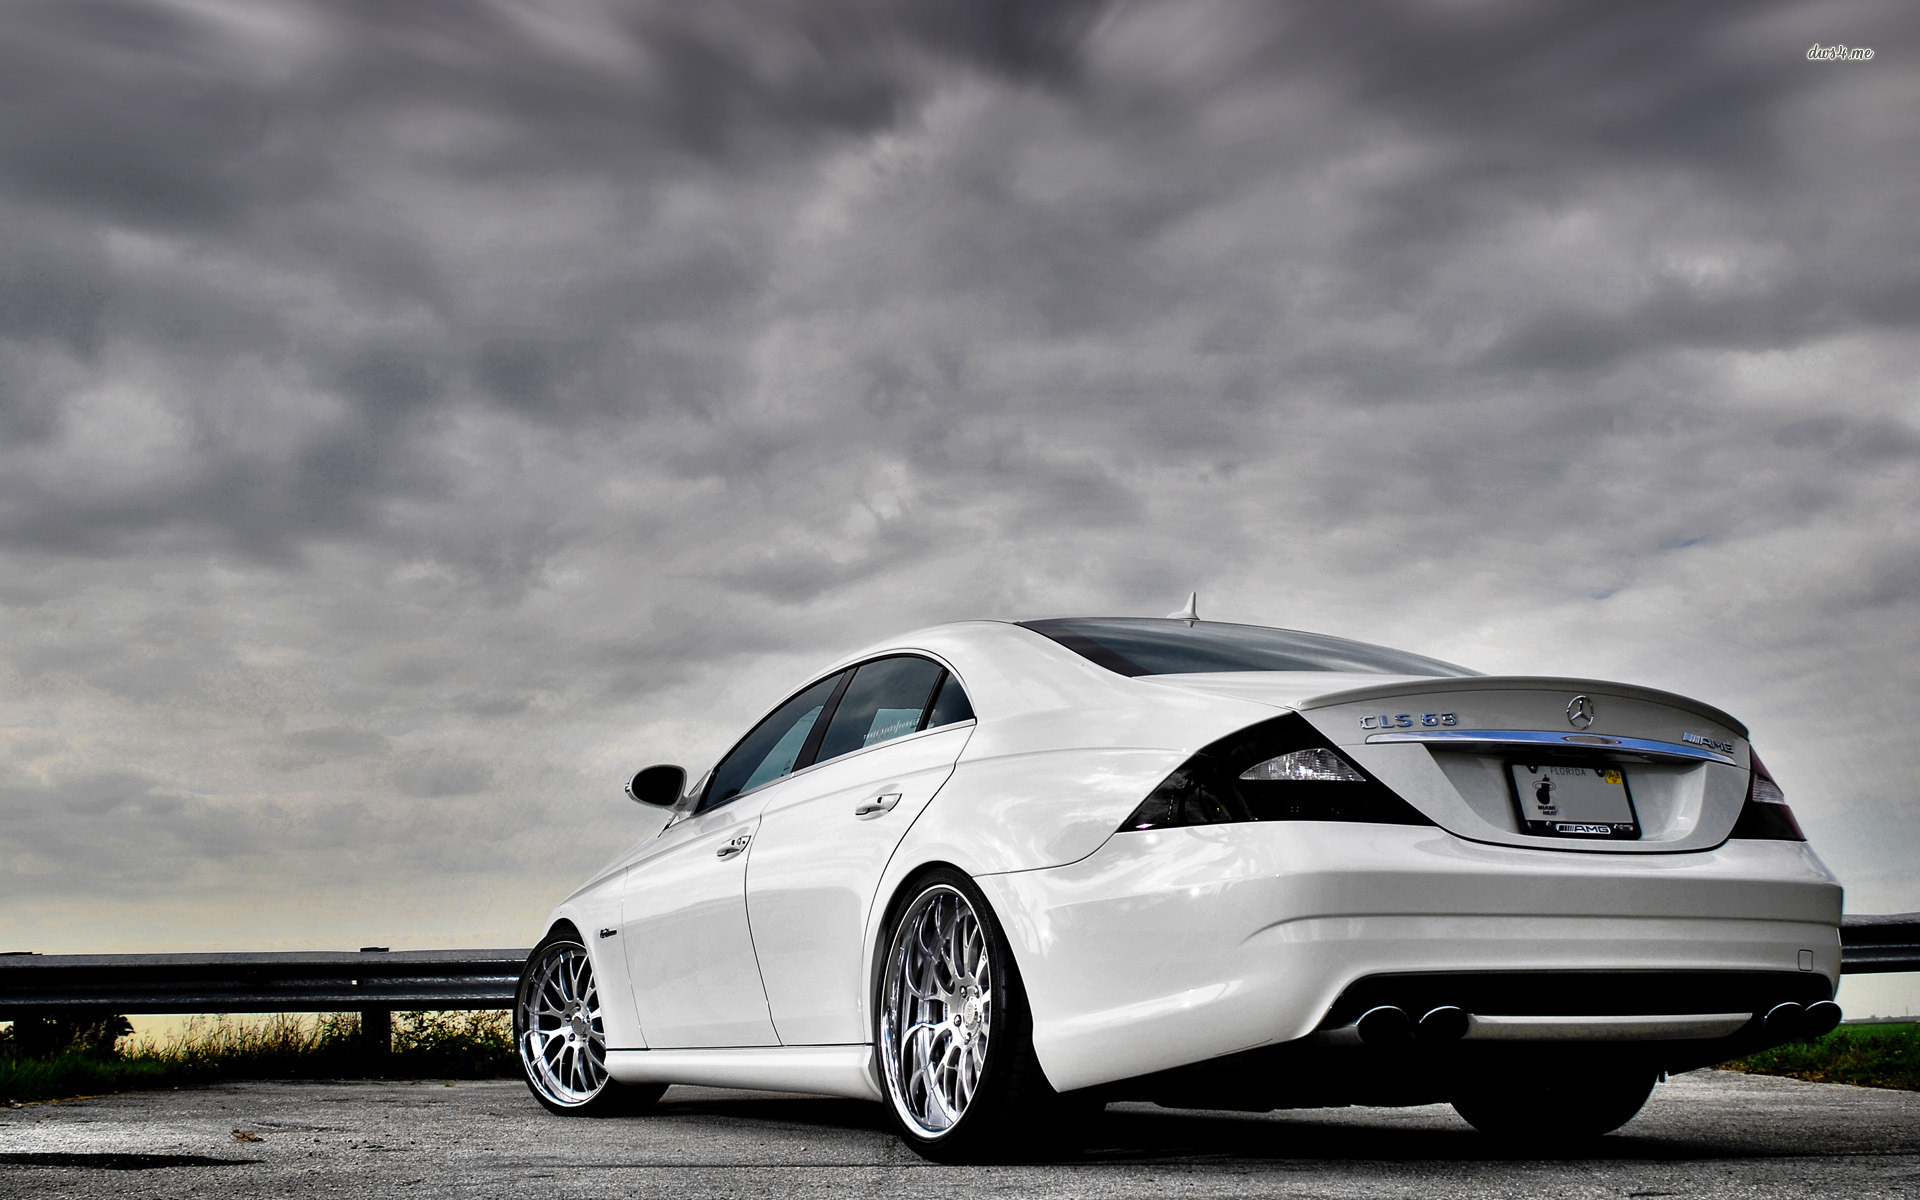 ... Mercedes-Benz CLS 63 AMG wallpaper 1920x1200 ...